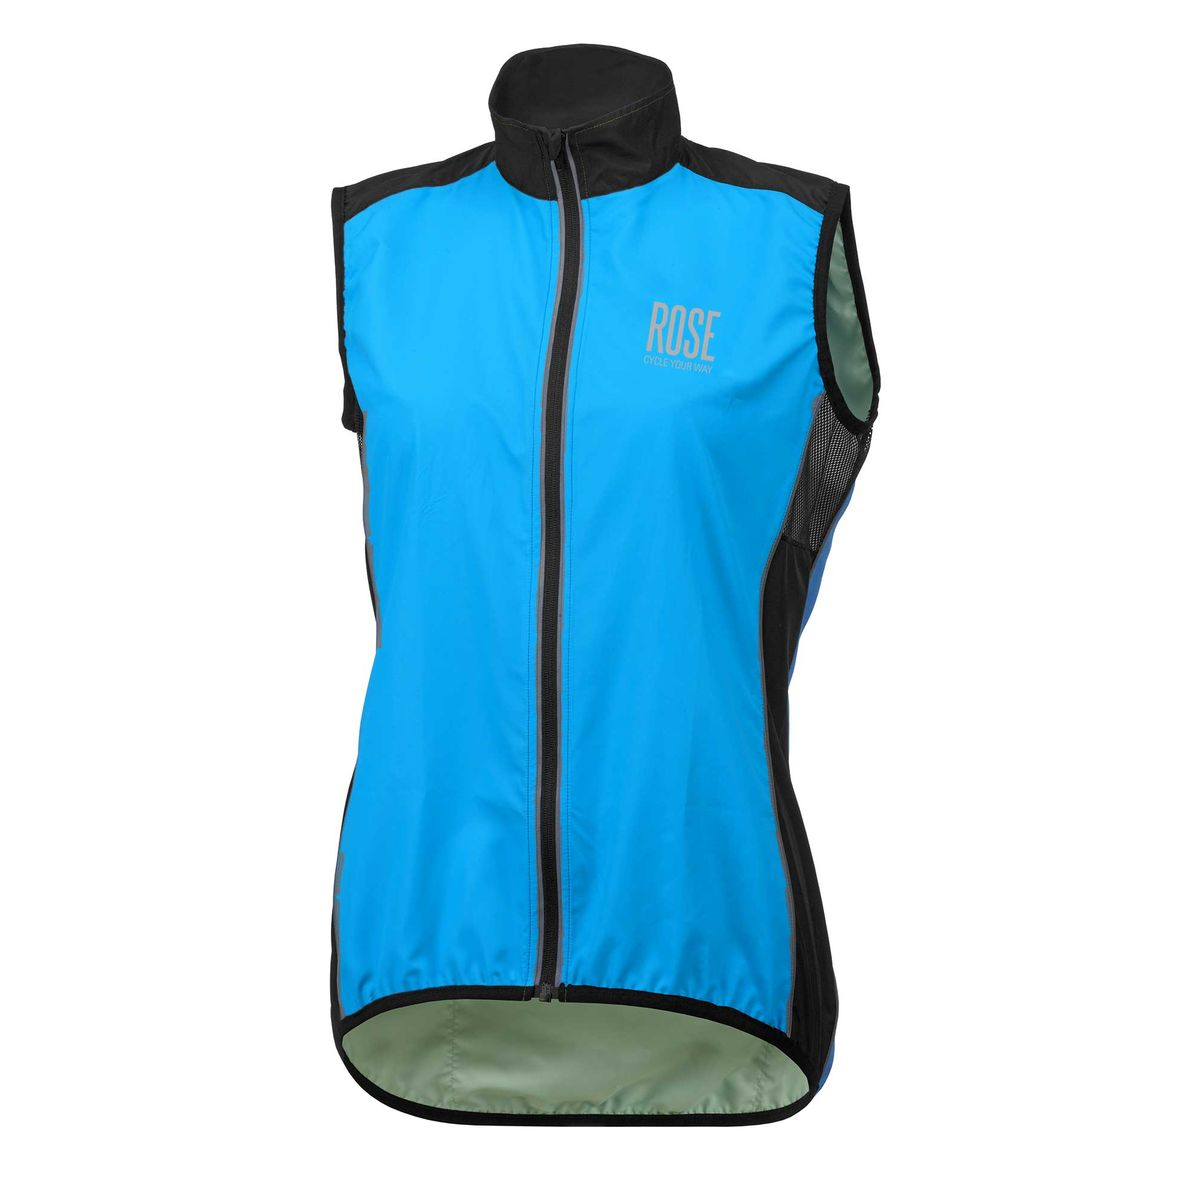 FIBRE women's wind vest